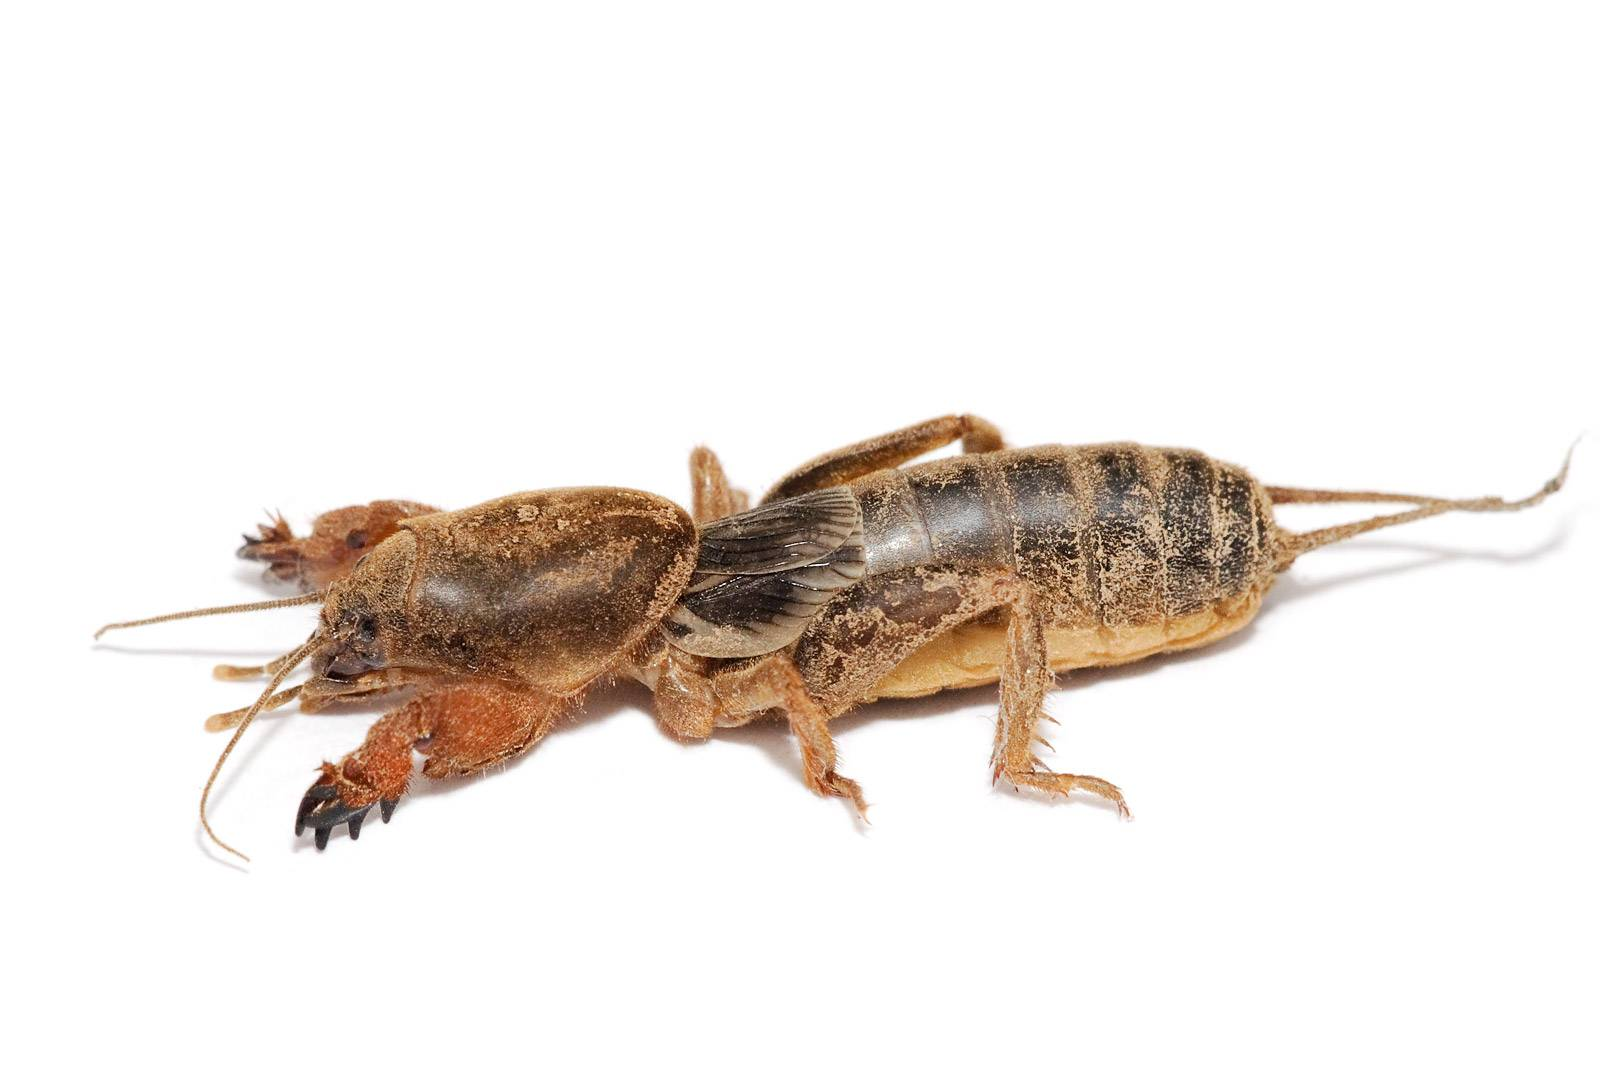 The blog fodder european mole crickets for Fishing with crickets